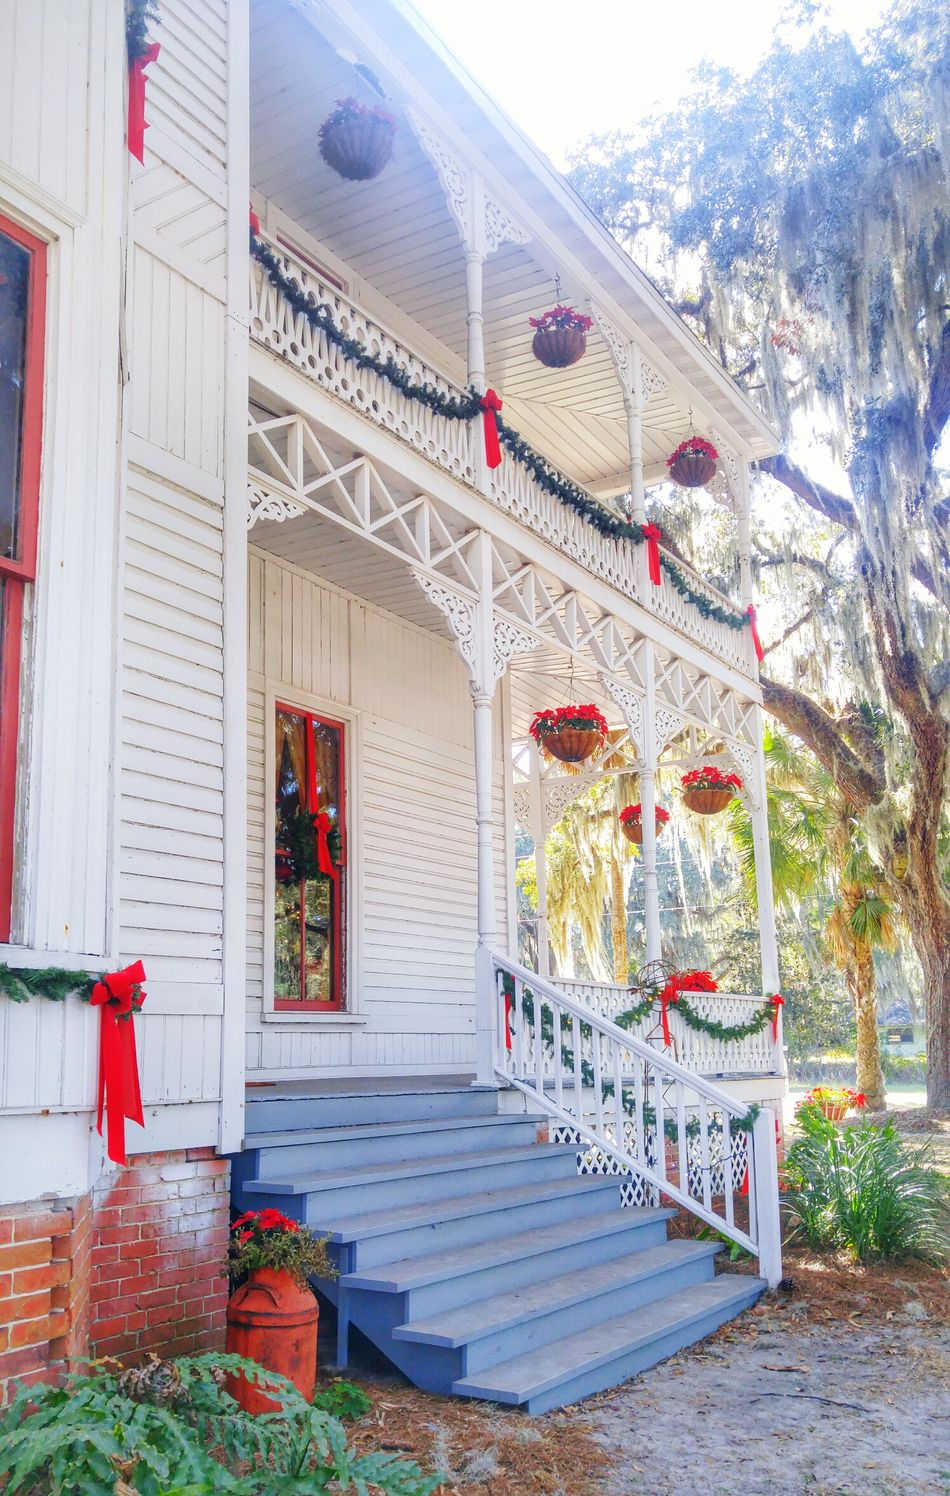 Built Structure Architecture Southern Living Baker House White Houses Historical History Porch Railing Porch Wood Porch Wooden House Architecture Christmas Decoration Southern Life Tradional Stairs Front Steps Florida